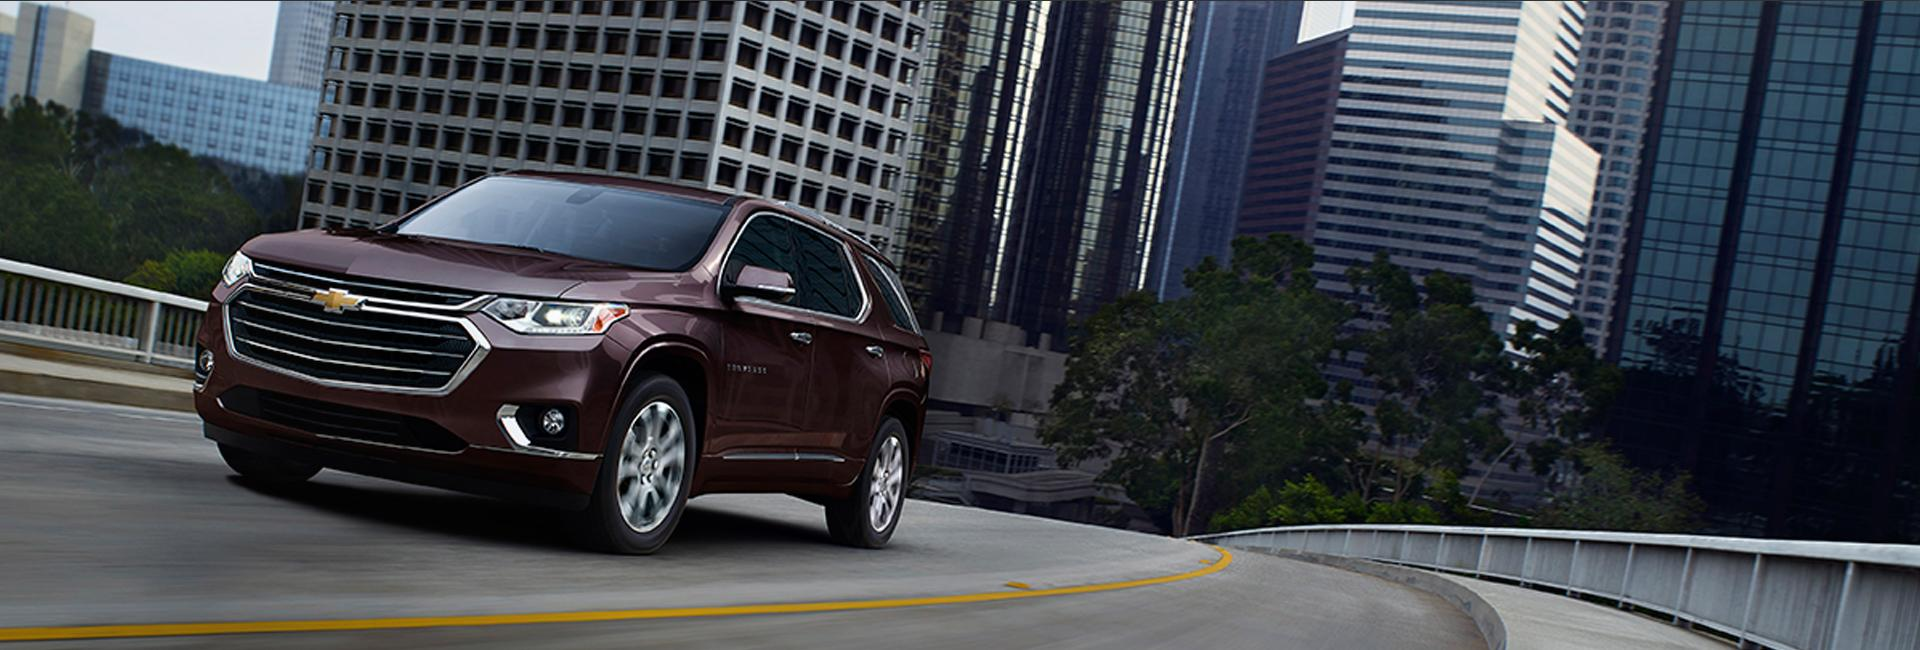 Angled profile of a Chevy Traverse in motion